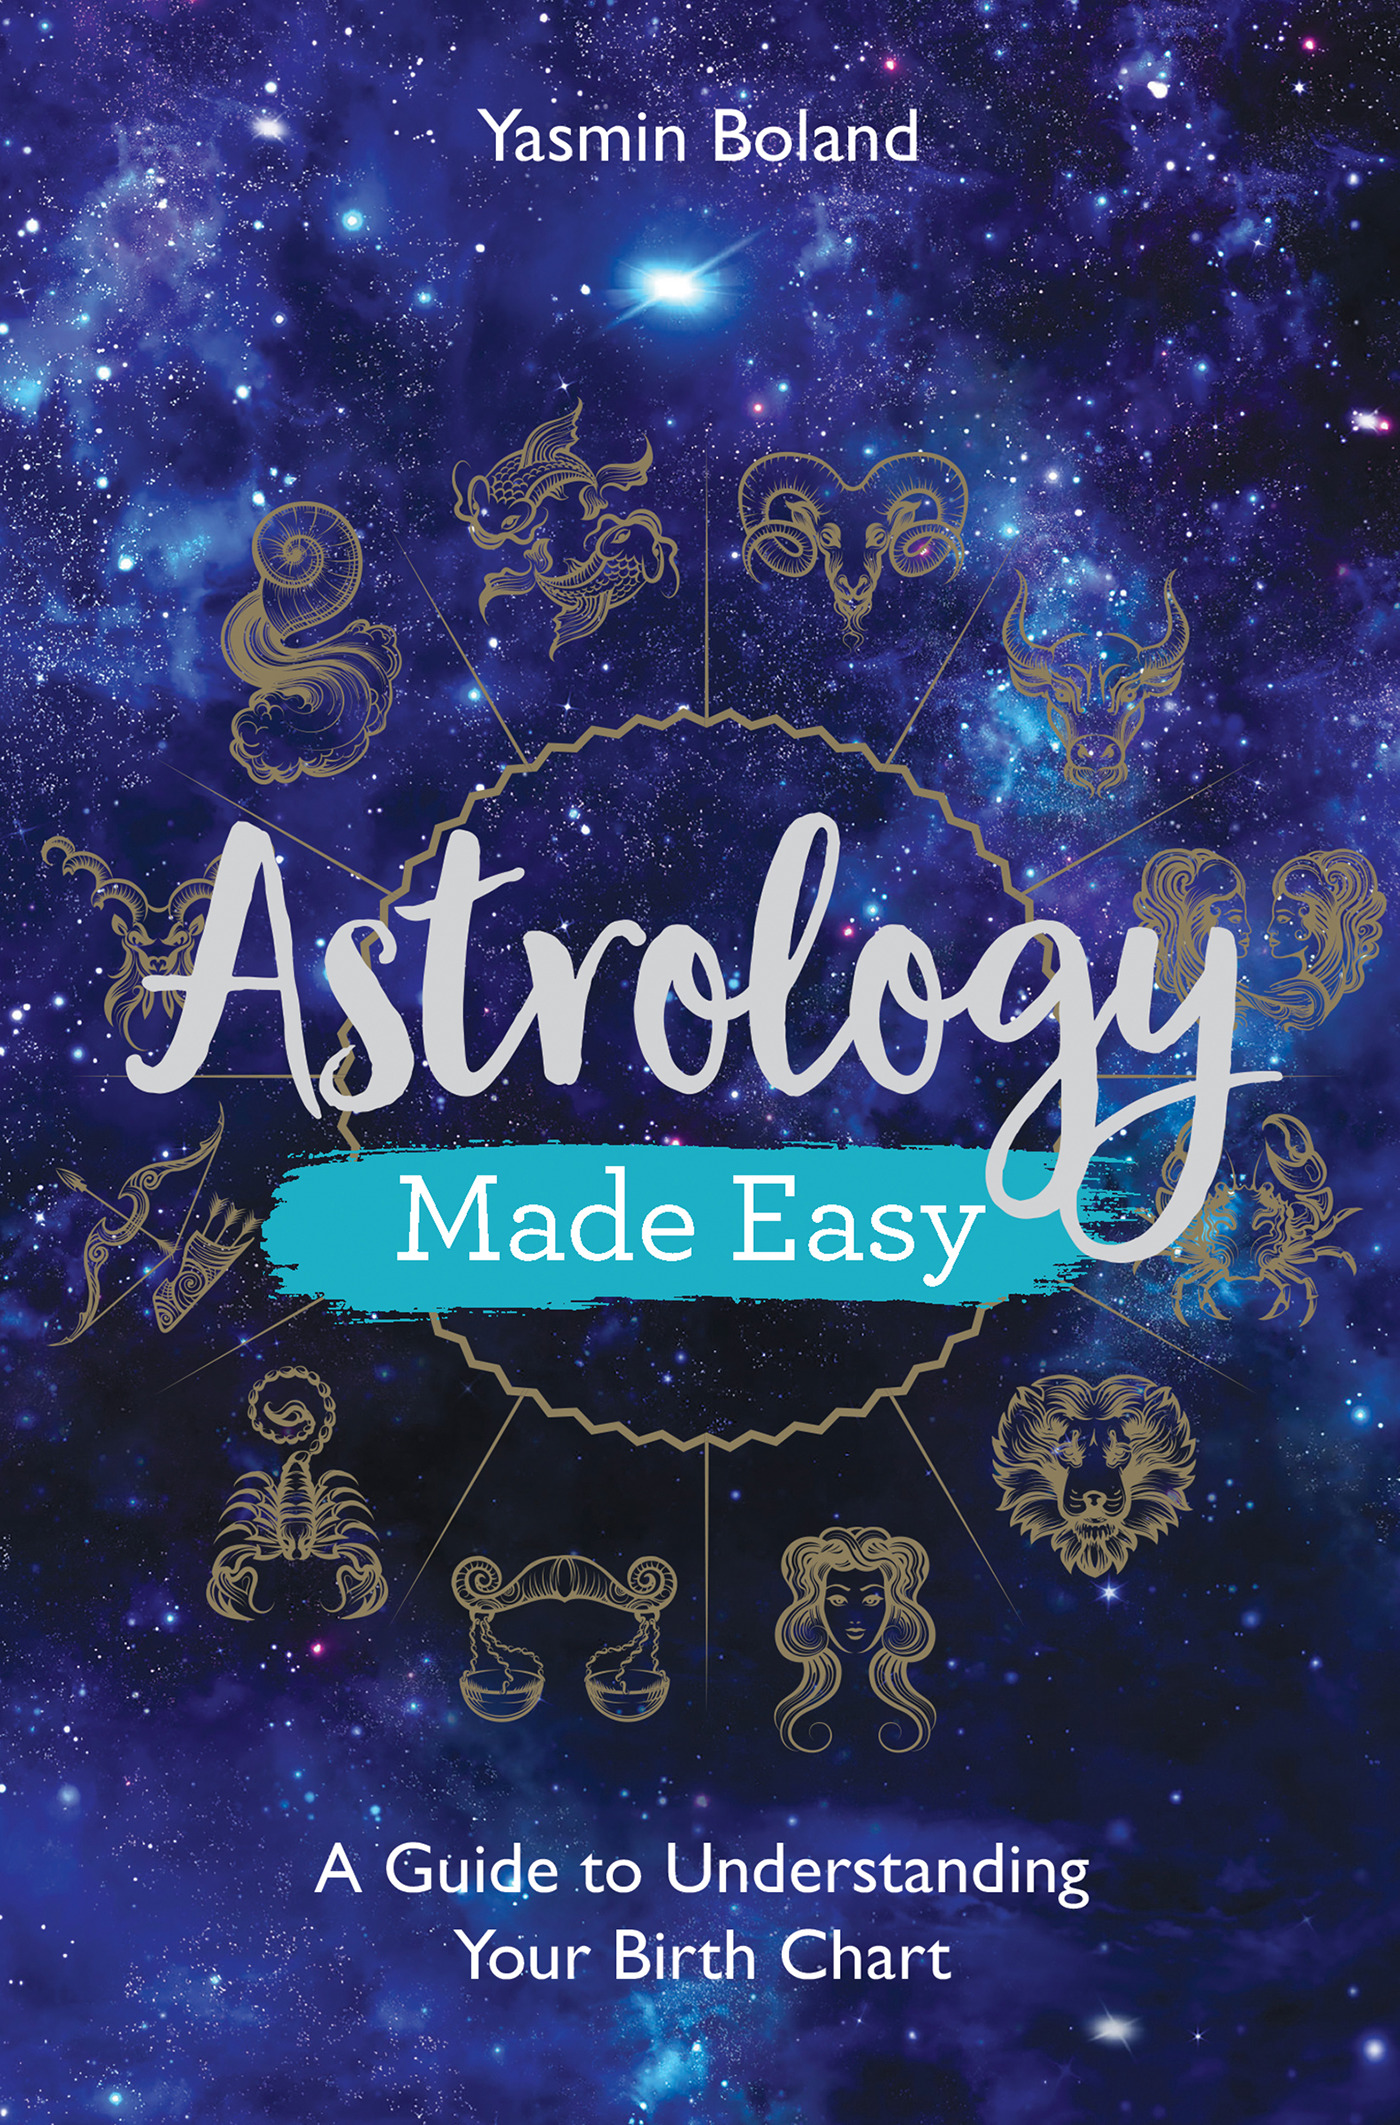 Astrology Made Easy : A Guide to Understanding Your Birth Chart | Faith & Spirituality